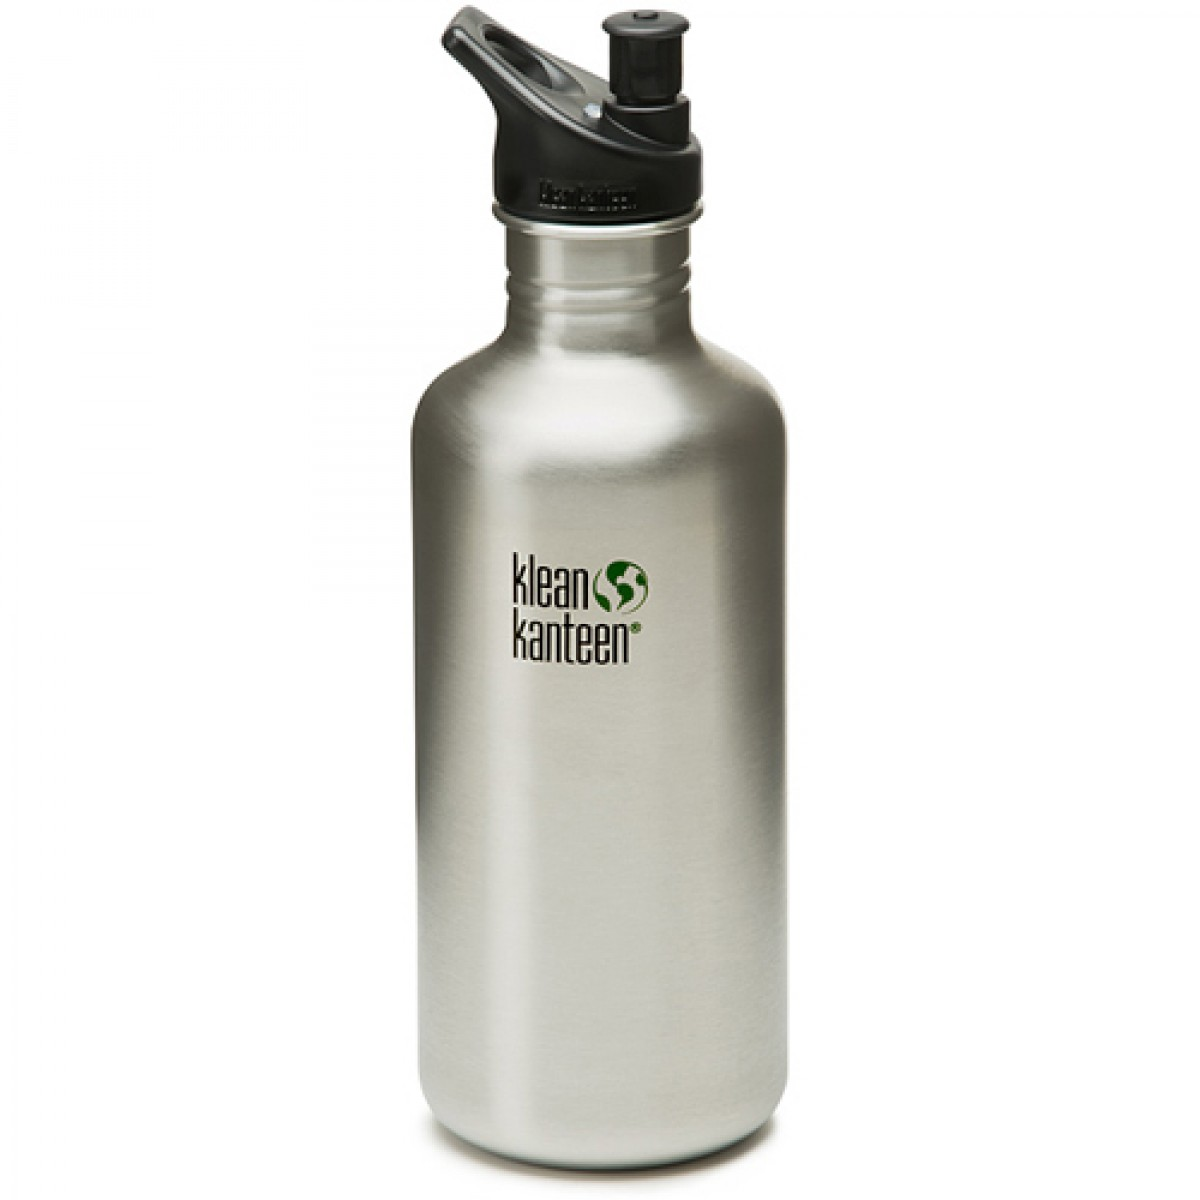 K40pps Klean Kanteen 40 Ounce Stainless Steel Water Bottle